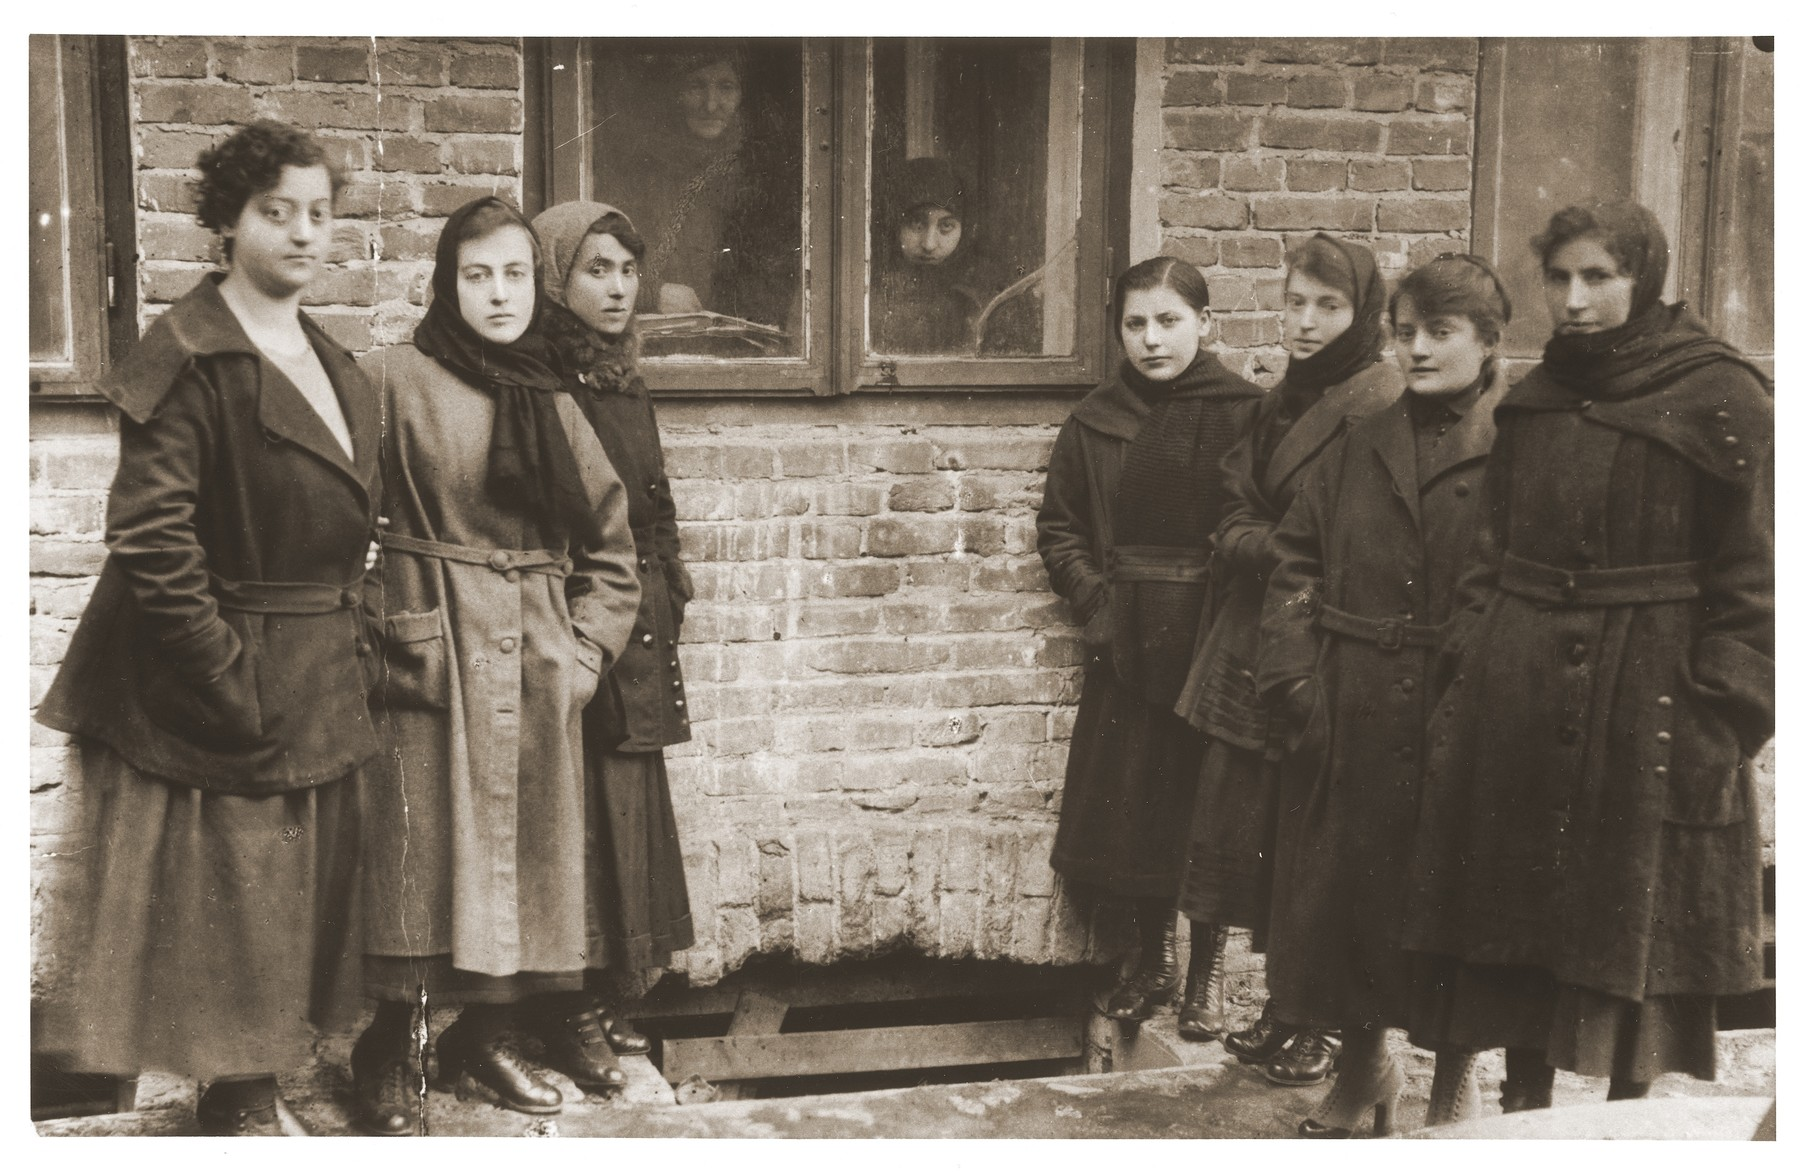 A group of young Jewish women stand outside the window of an unidentified building in Chelm.  Among those pictured are Luba Appelbaum (far left) and Feige Zygielbojm (second from the left).  Feige is the sister of Szmul Artur Zygielbojm; Luba is his cousin.